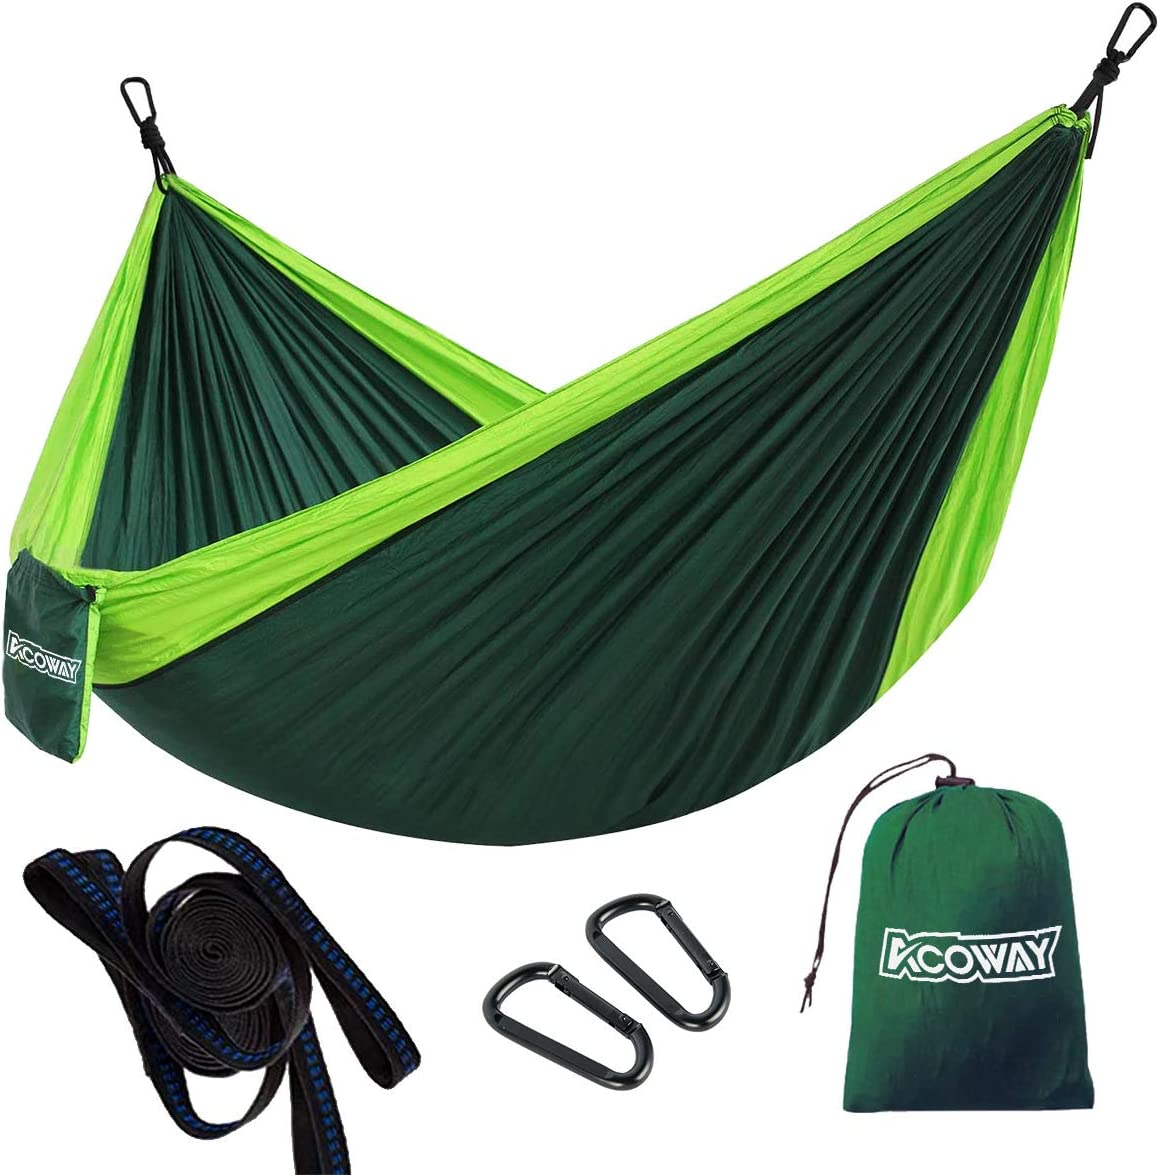 Hammock Camping Double, Hammocks for Trees with 2 Tree Straps, Camping Hammock Lightweight Travel Parachute,Indoor Outdoor Double hammock Backpacking for Travel, Beach, Backyard, Patio, Hiking,Green